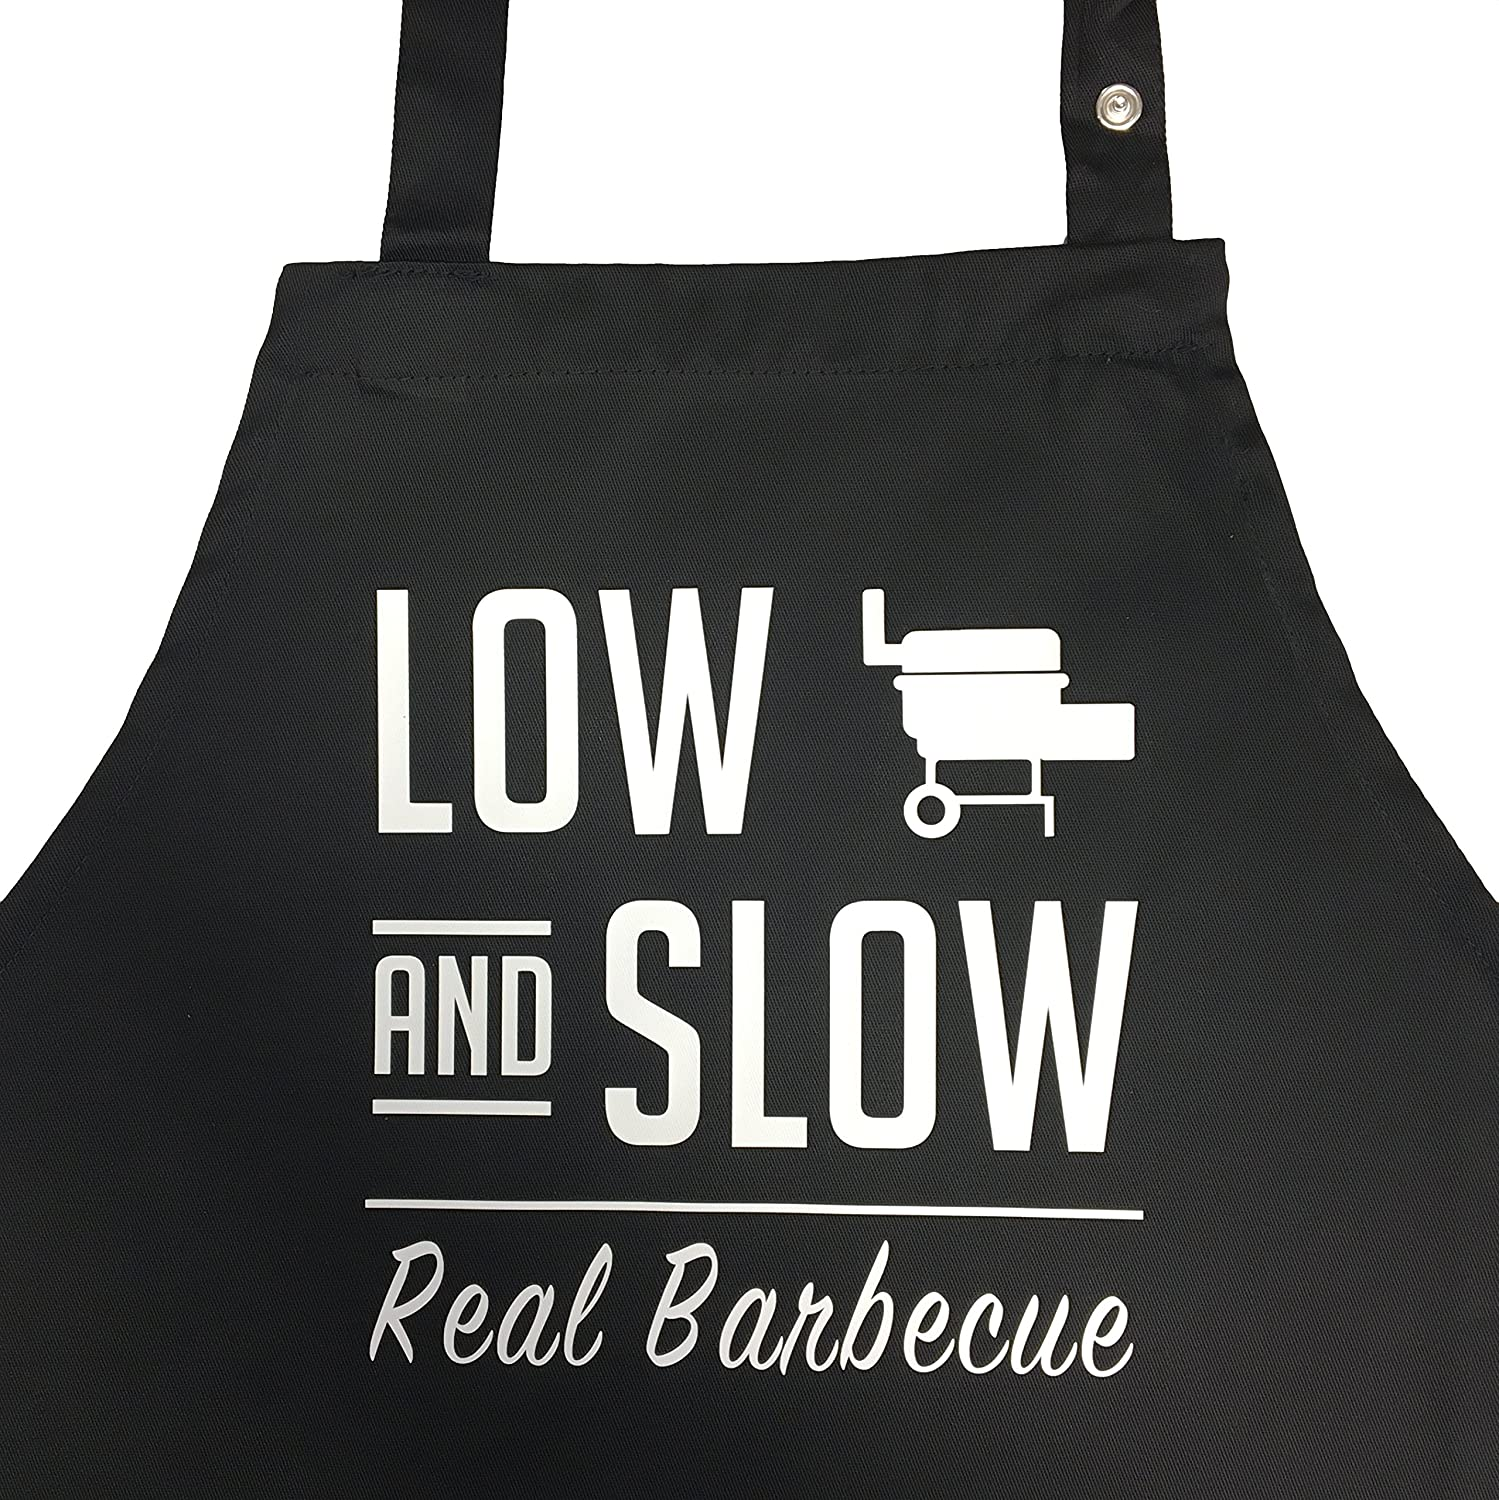 Low and Slow, funny BBQ apron for men, cooking apron, the gift idea for the BBQ smoker fan, the gift for the Kamingrill or charcoal griller